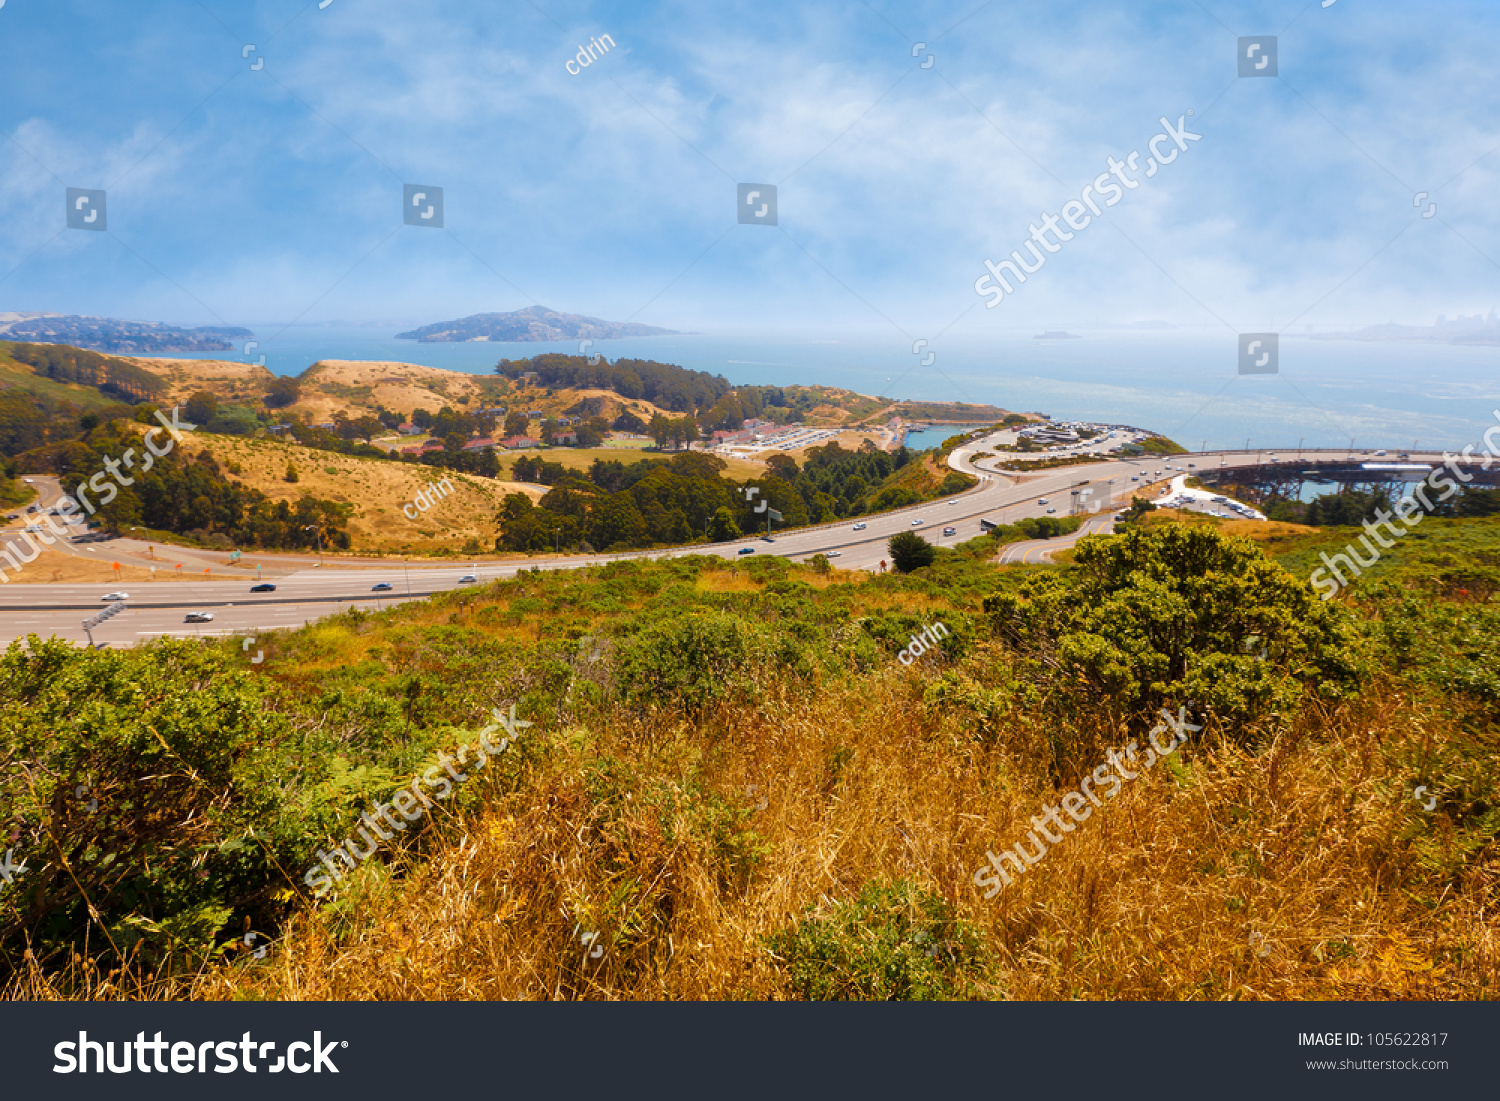 California landscape overlooking san francisco bay stock for San francisco landscape